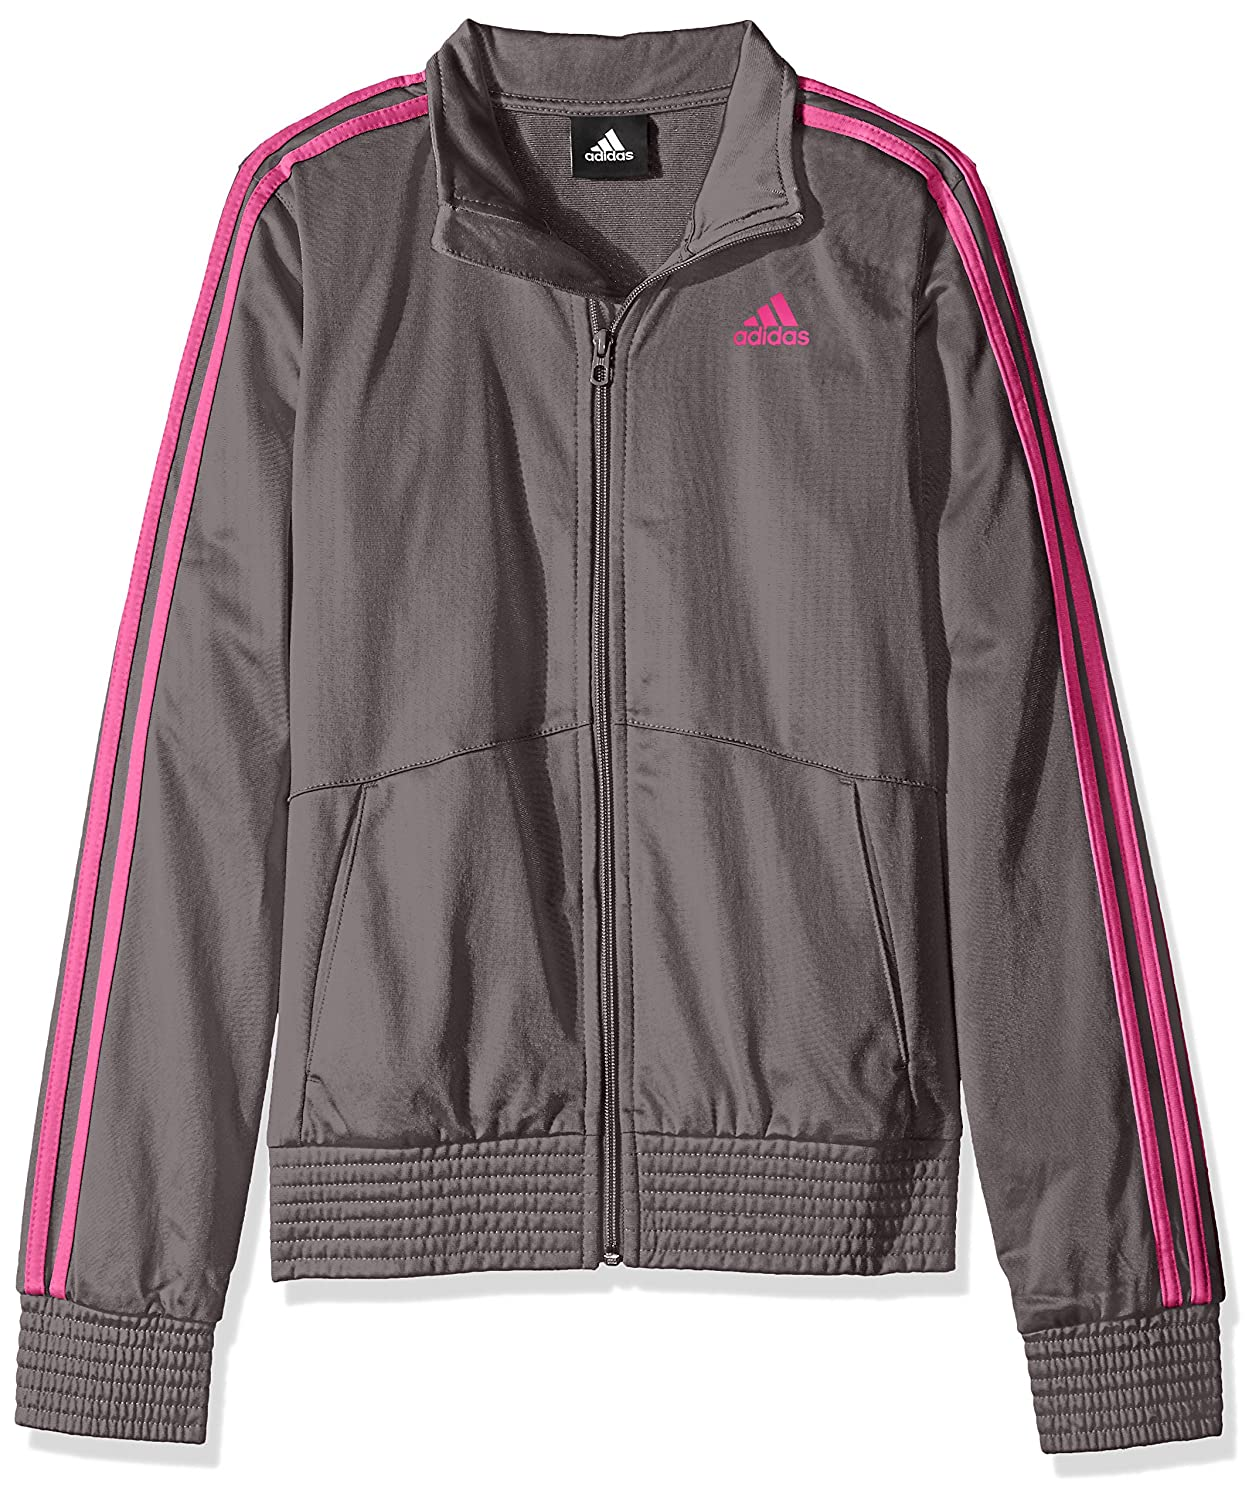 adidas Girls' Designator Track Jacket BAGA9HD9